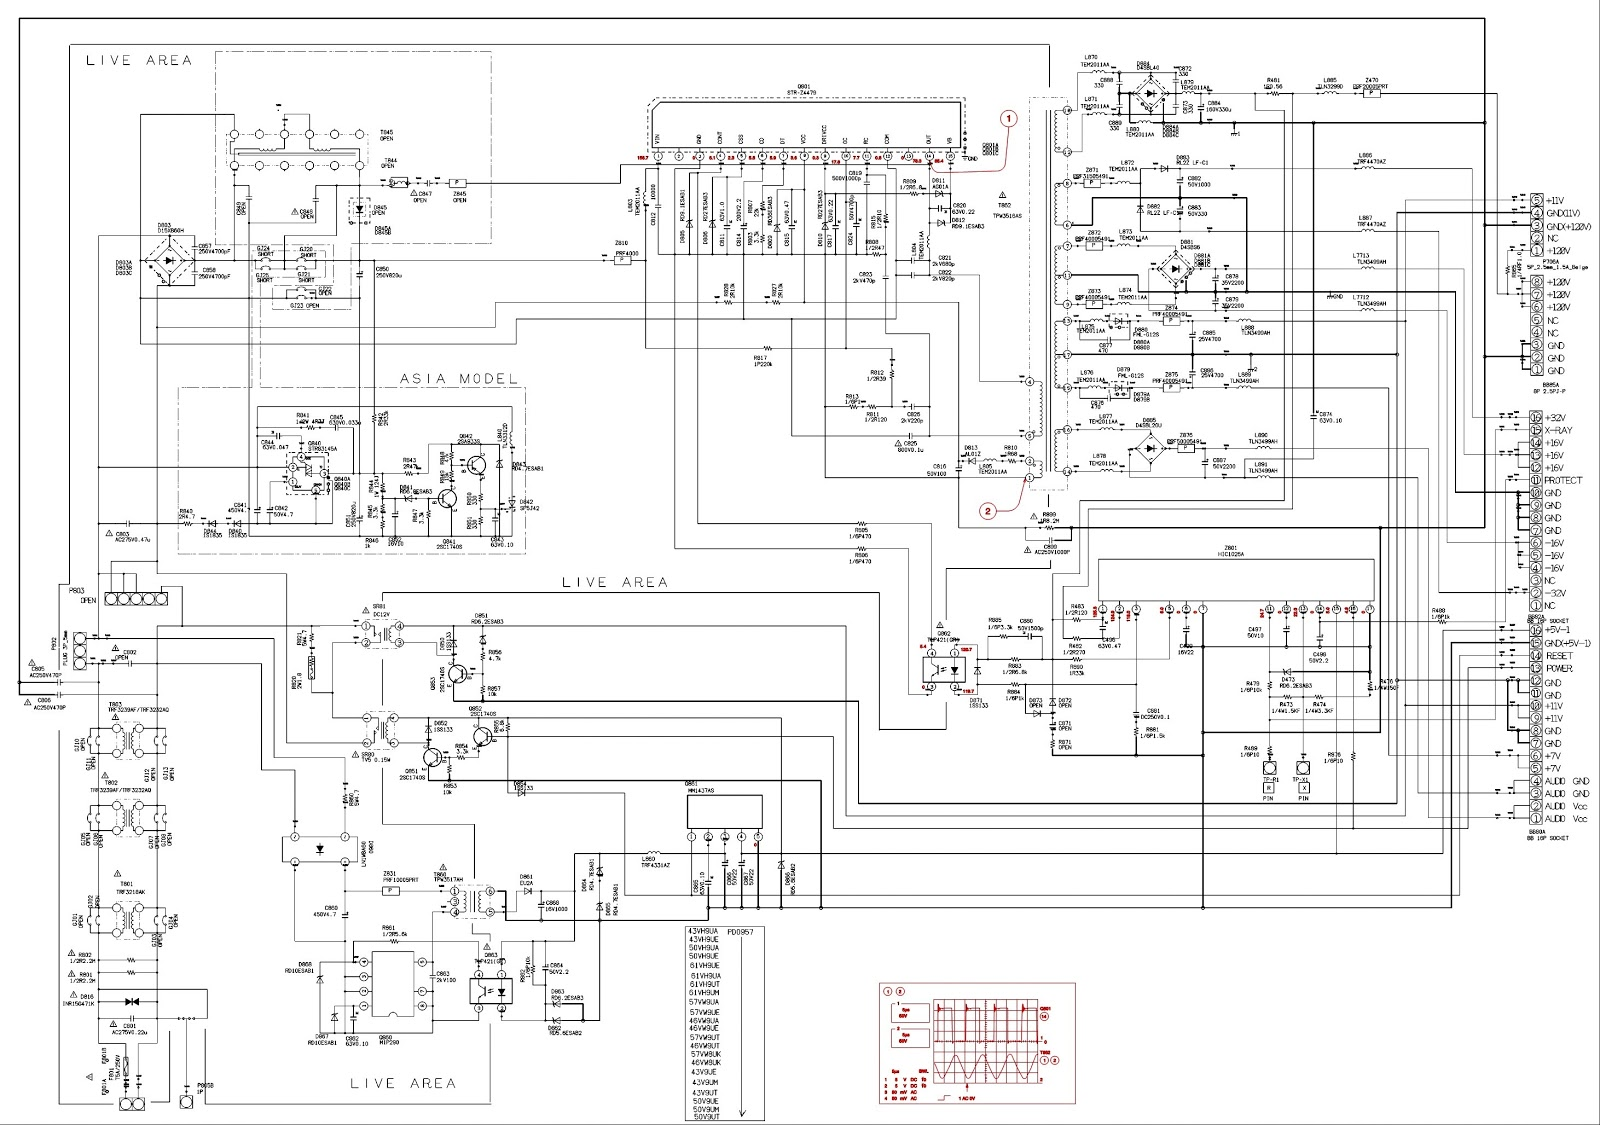 small resolution of toshiba external wiring diagrams wiring diagram origin split ac system diagram toshiba drive wiring diagram